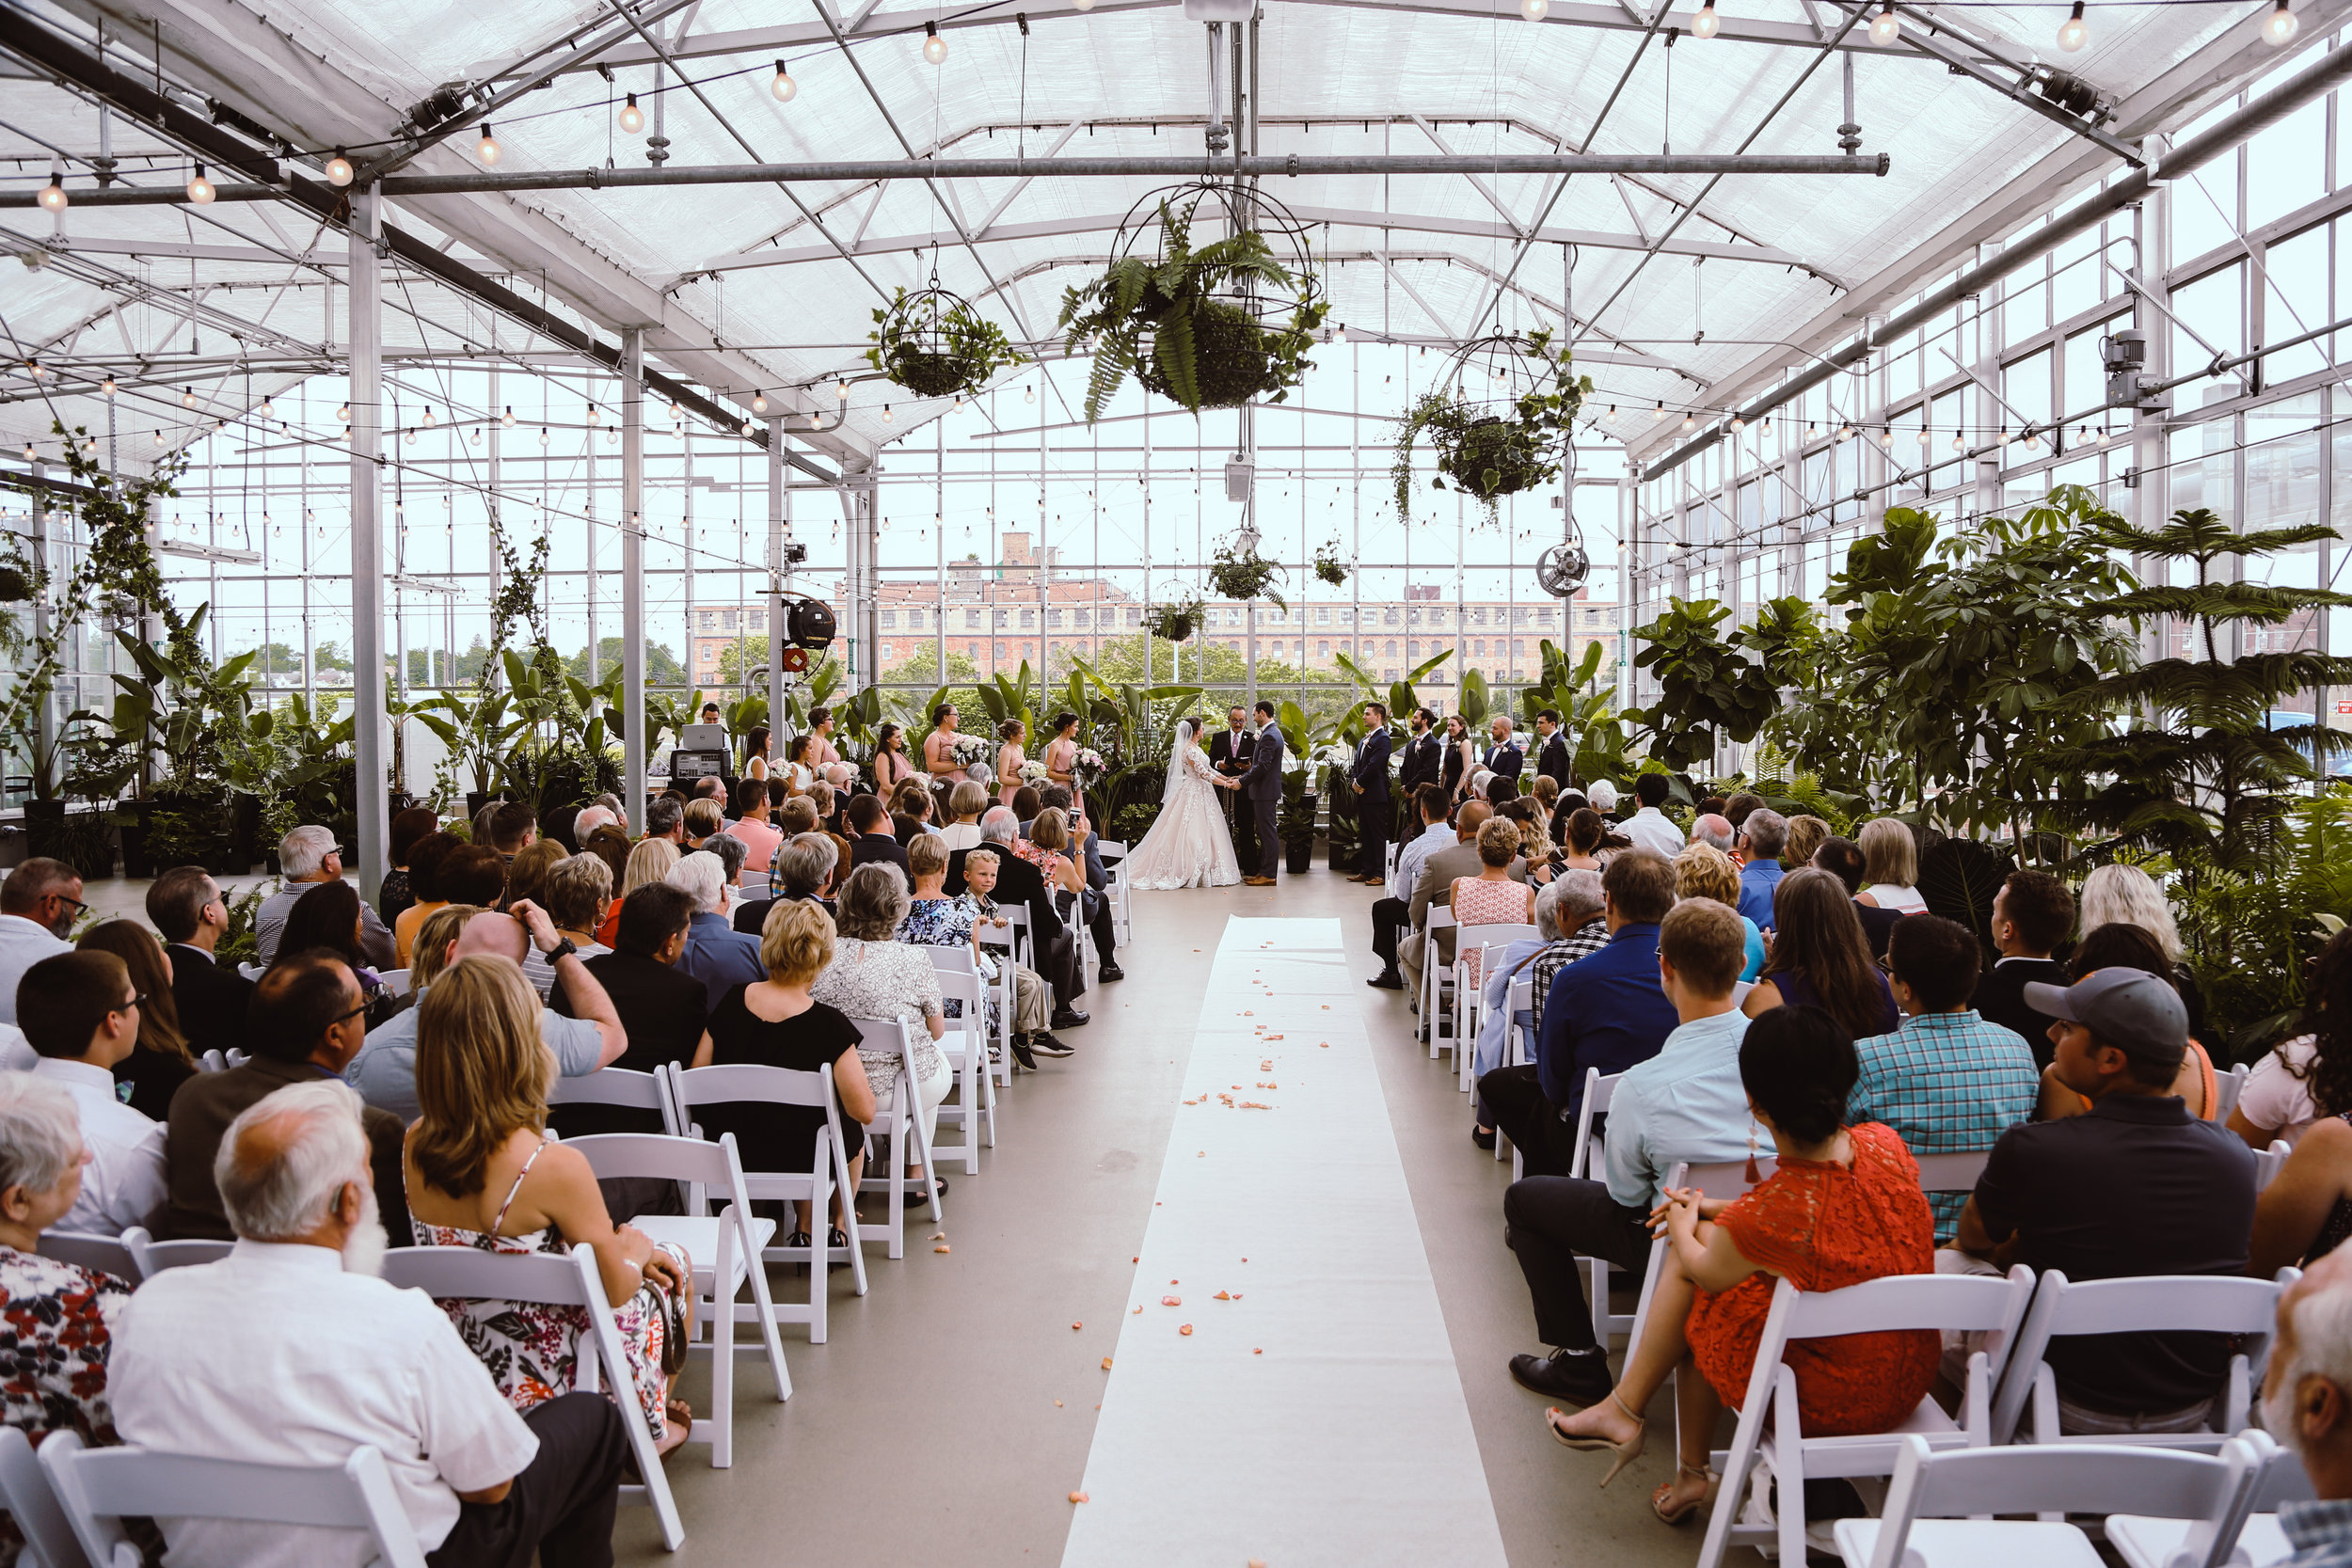 If you can't tell from my images, I love natural light. So naturally, creating a gorgeous ceremony within a greenhouse is one of my favorite ideas. It creates an opportunity for natural light and a sense of life while still keeping temperatures regulated, easy access to elderly guests, and is not weather dependent.